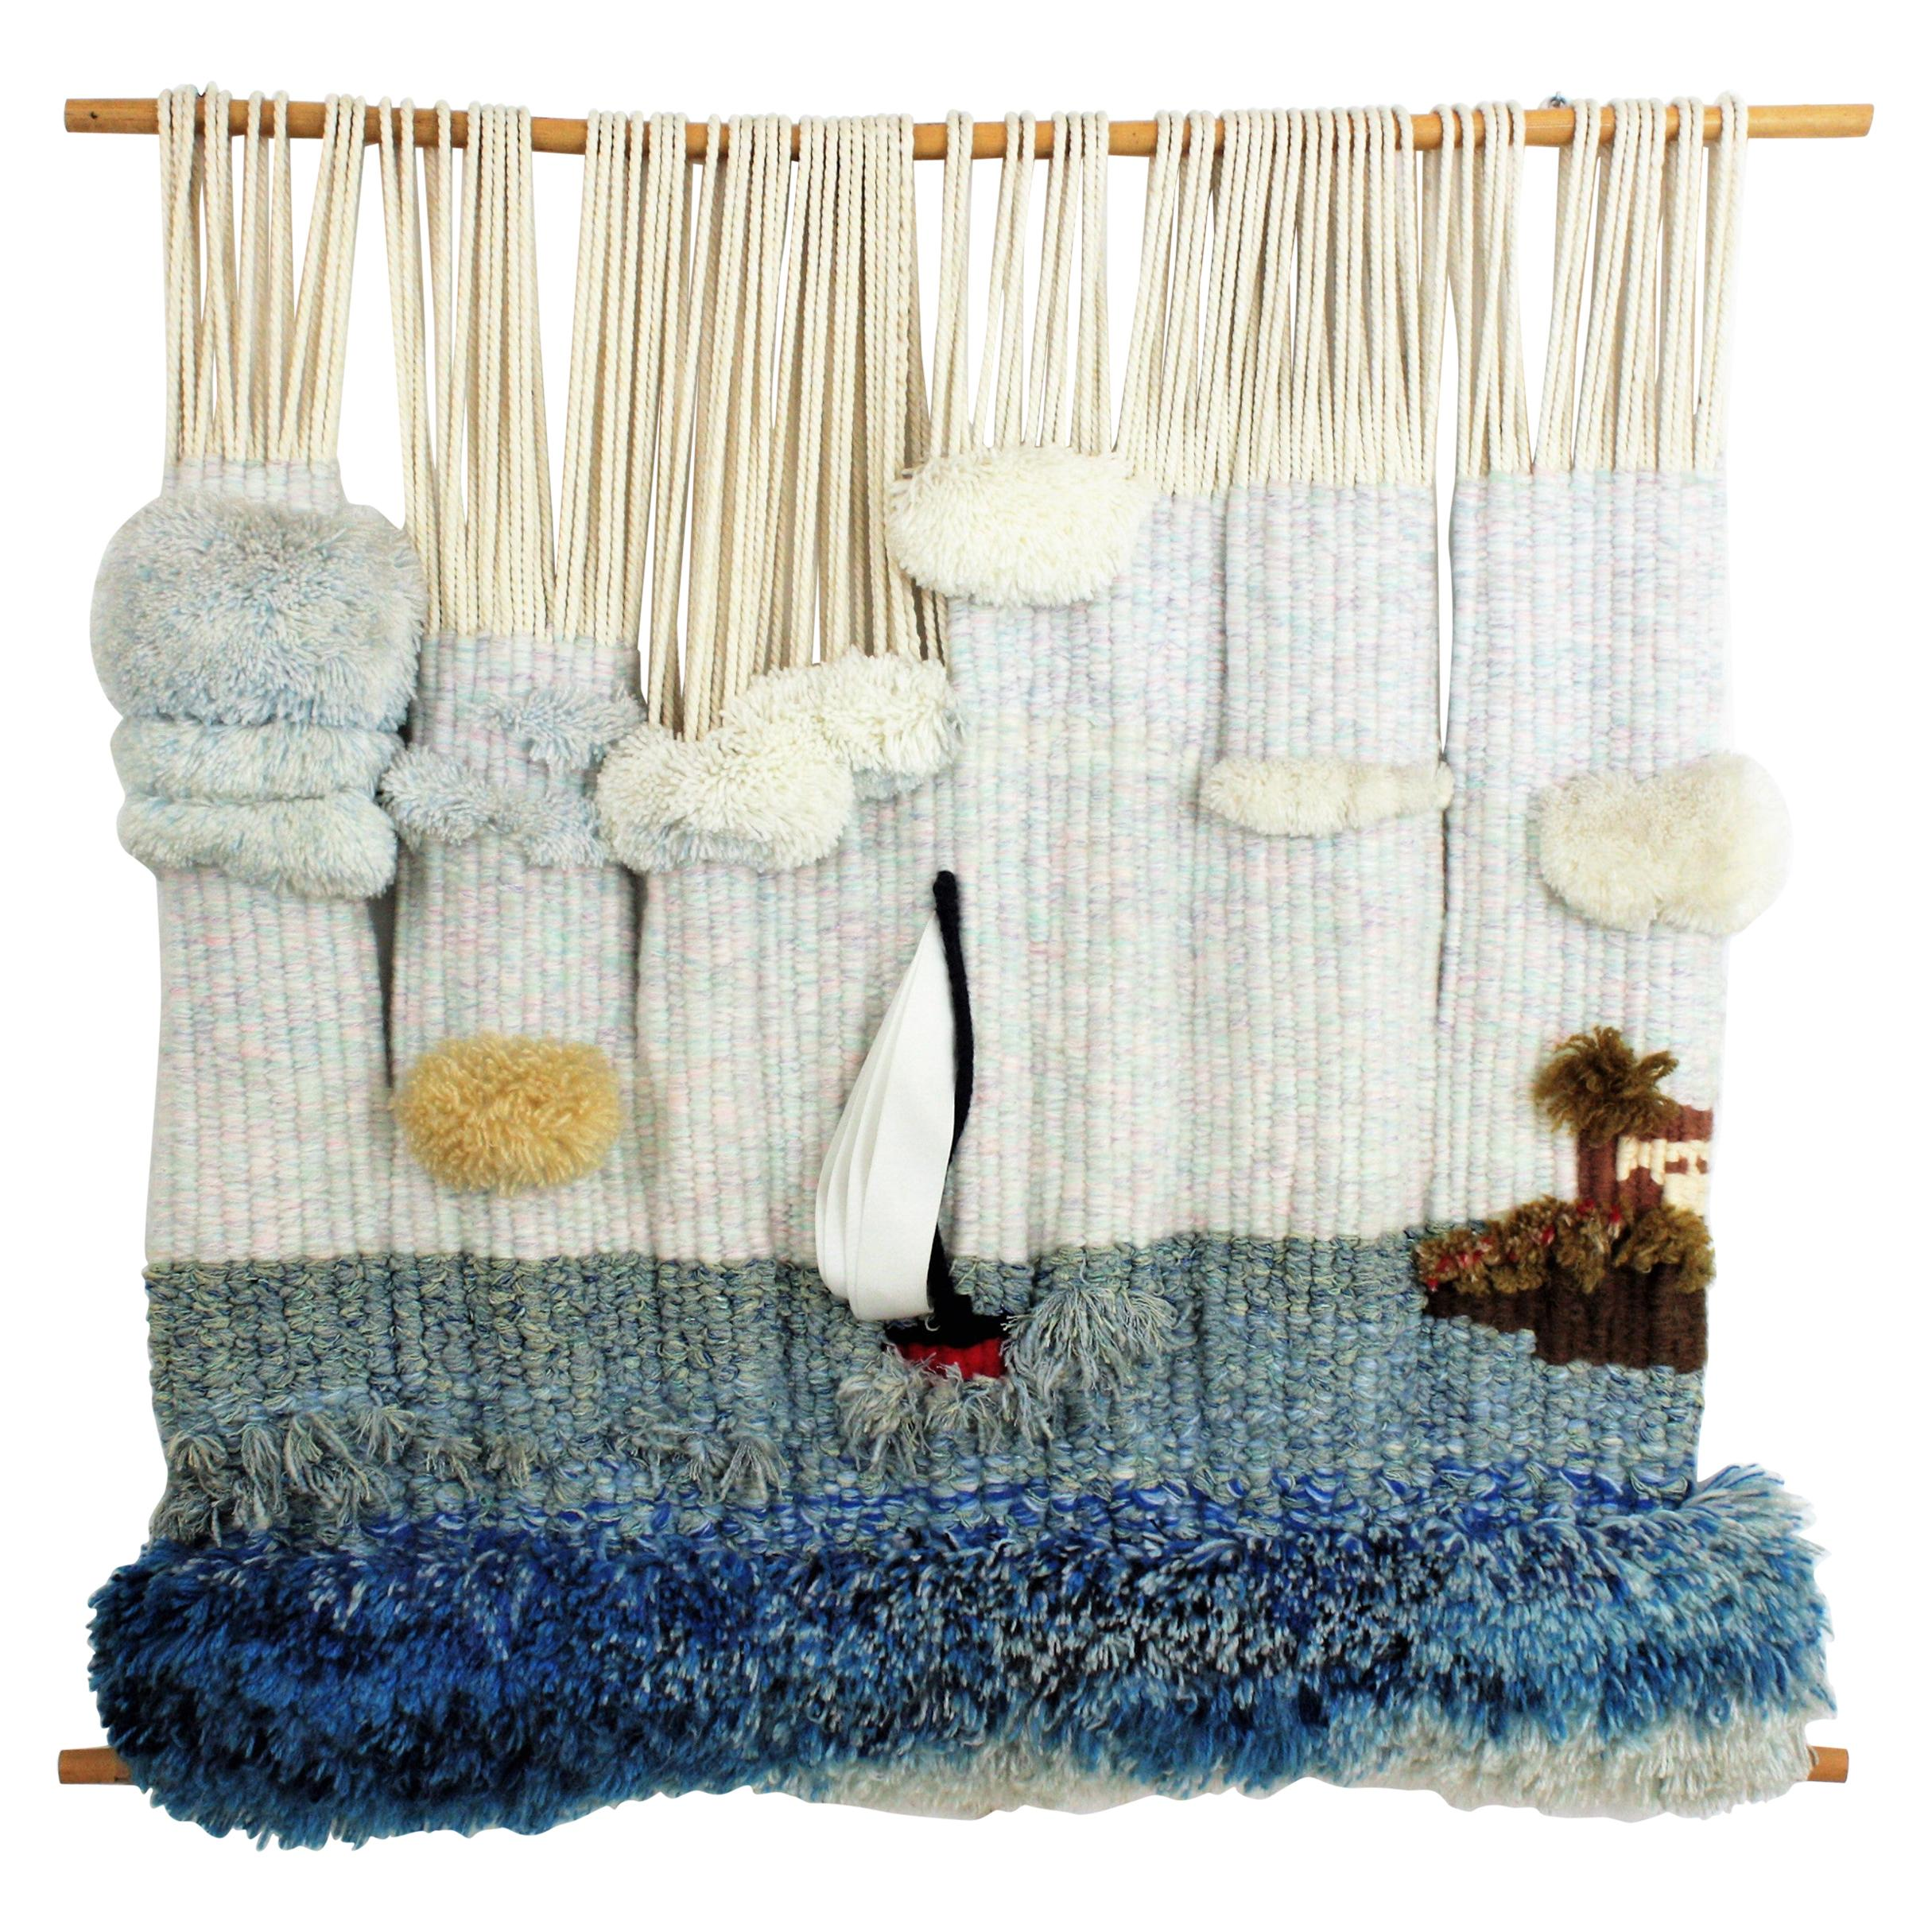 Sea Landscape Macrame Wall Hanging Tapestry / Textile Wall Art, 1970s